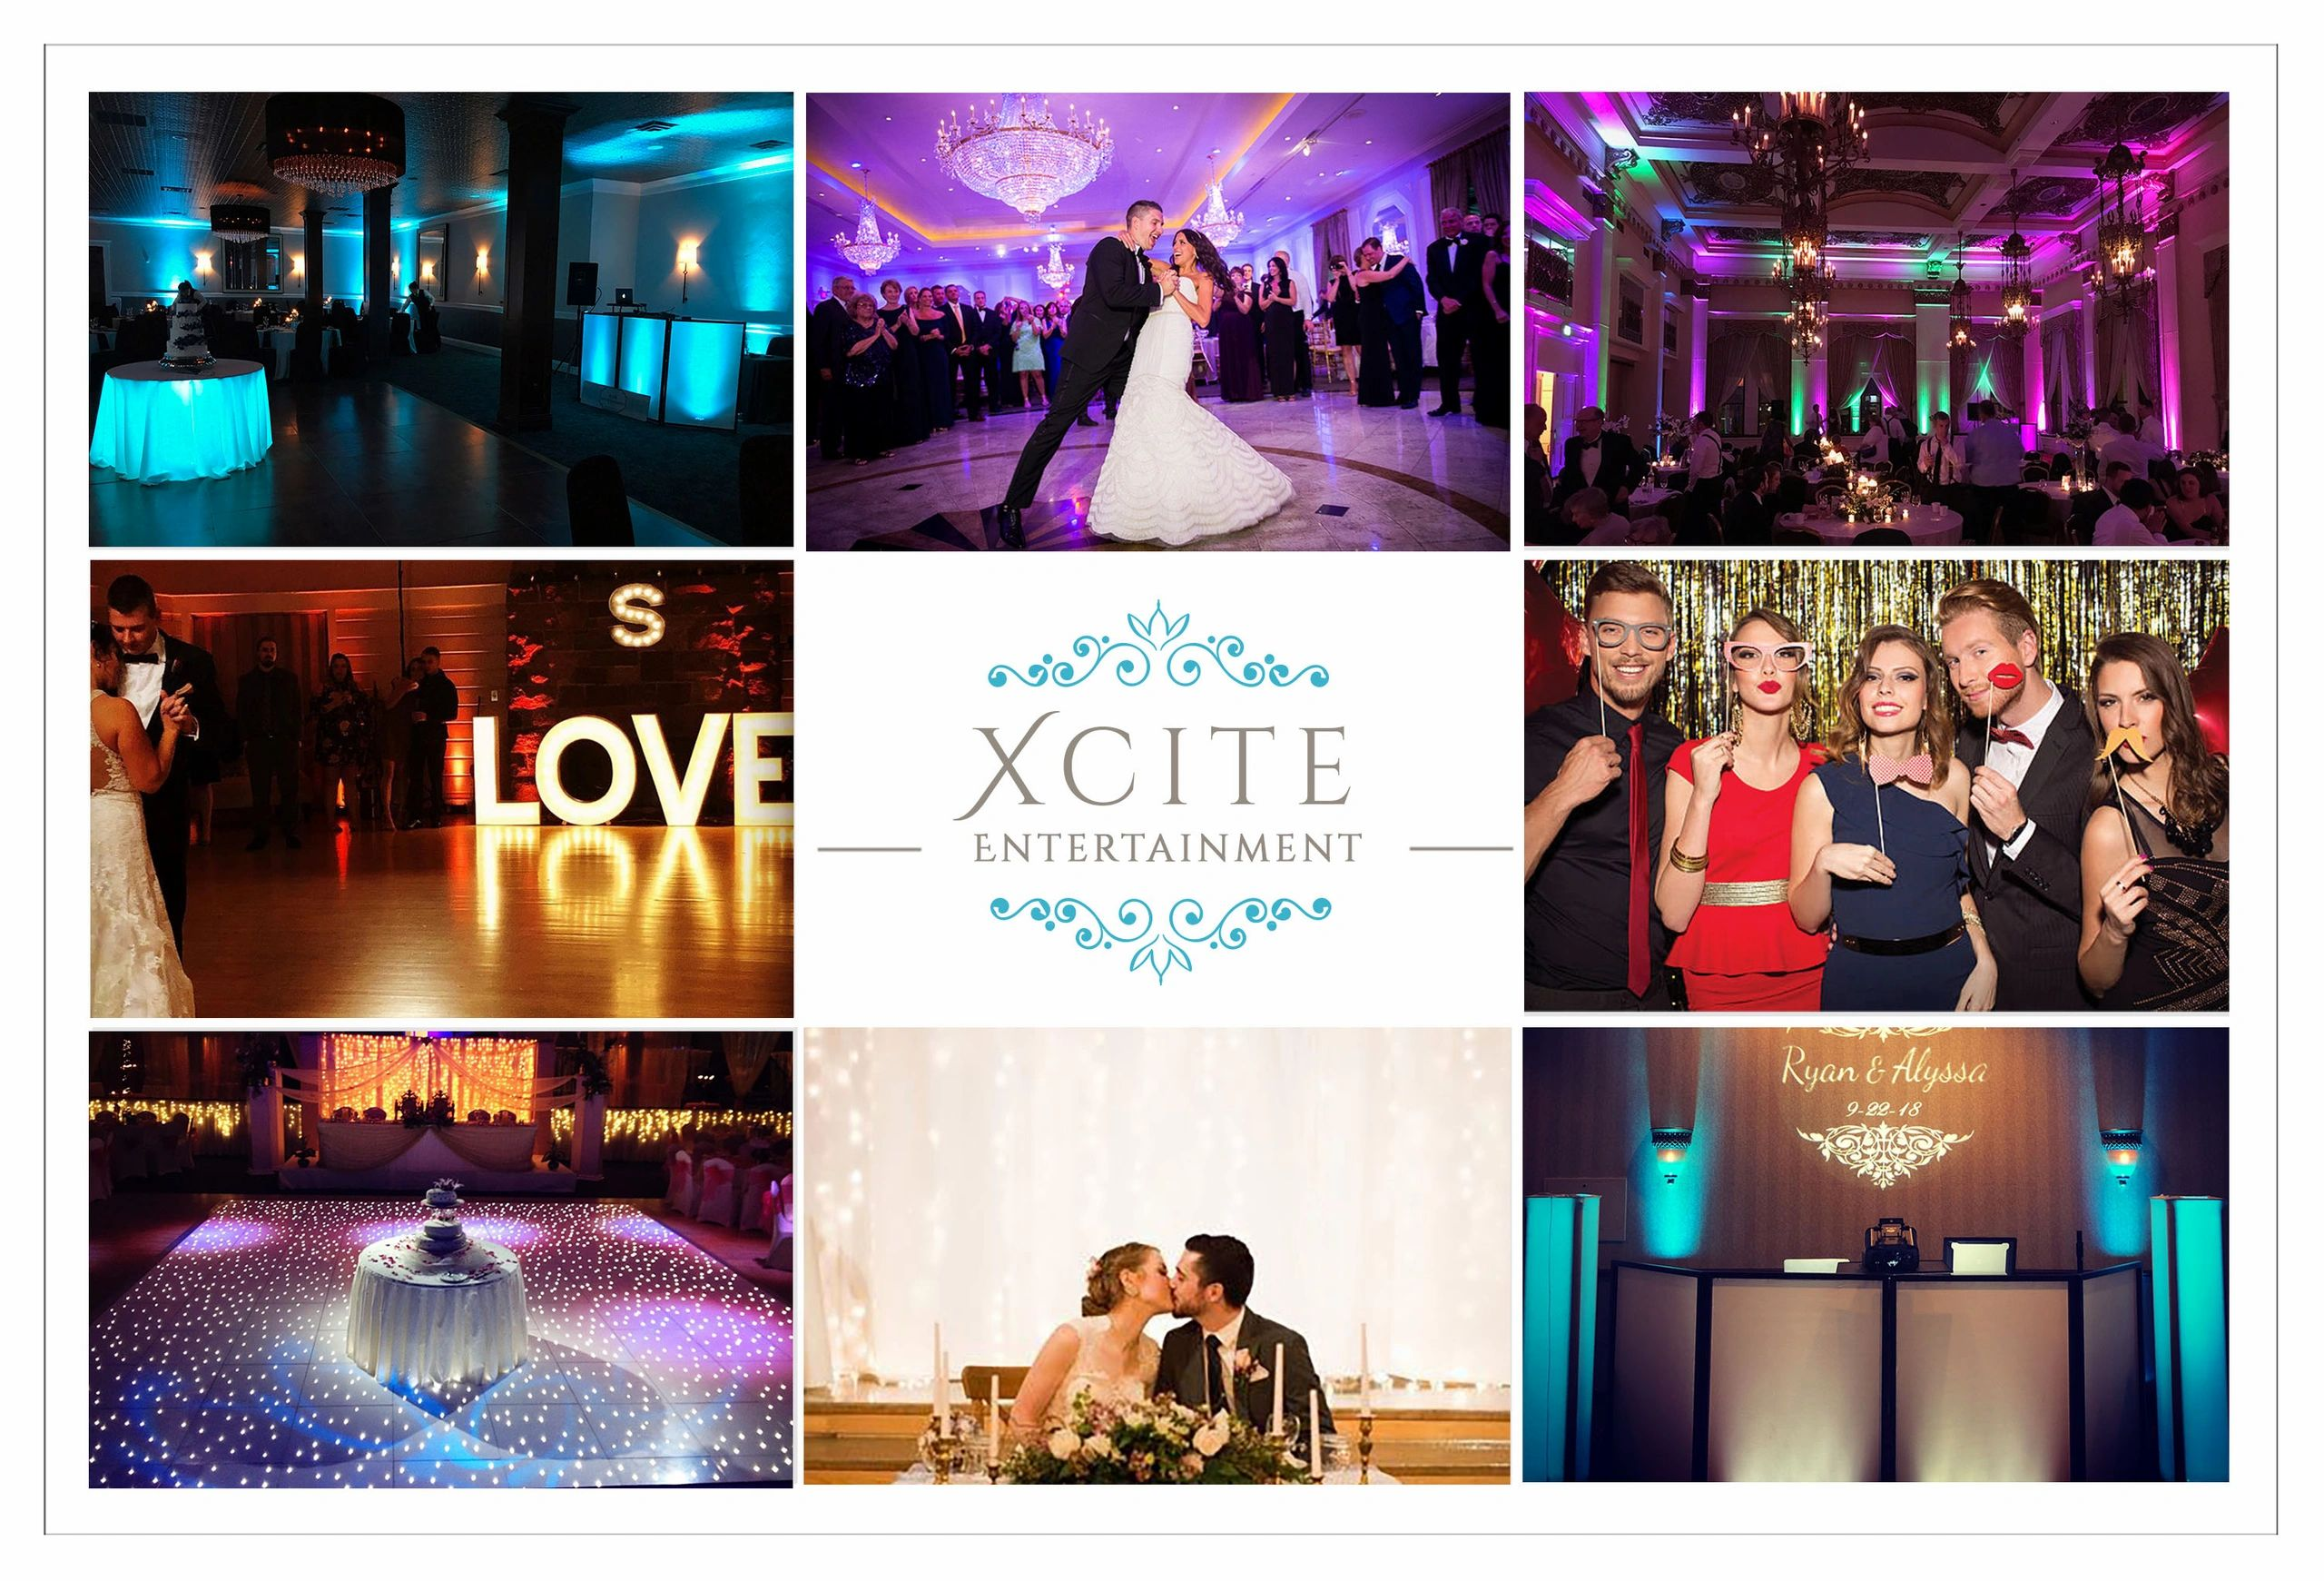 Milwaukee Wedding Djs, Wisconsin Wedding djs, Milwaukee Photo Booths, Xcite Entertainment, WI Djs